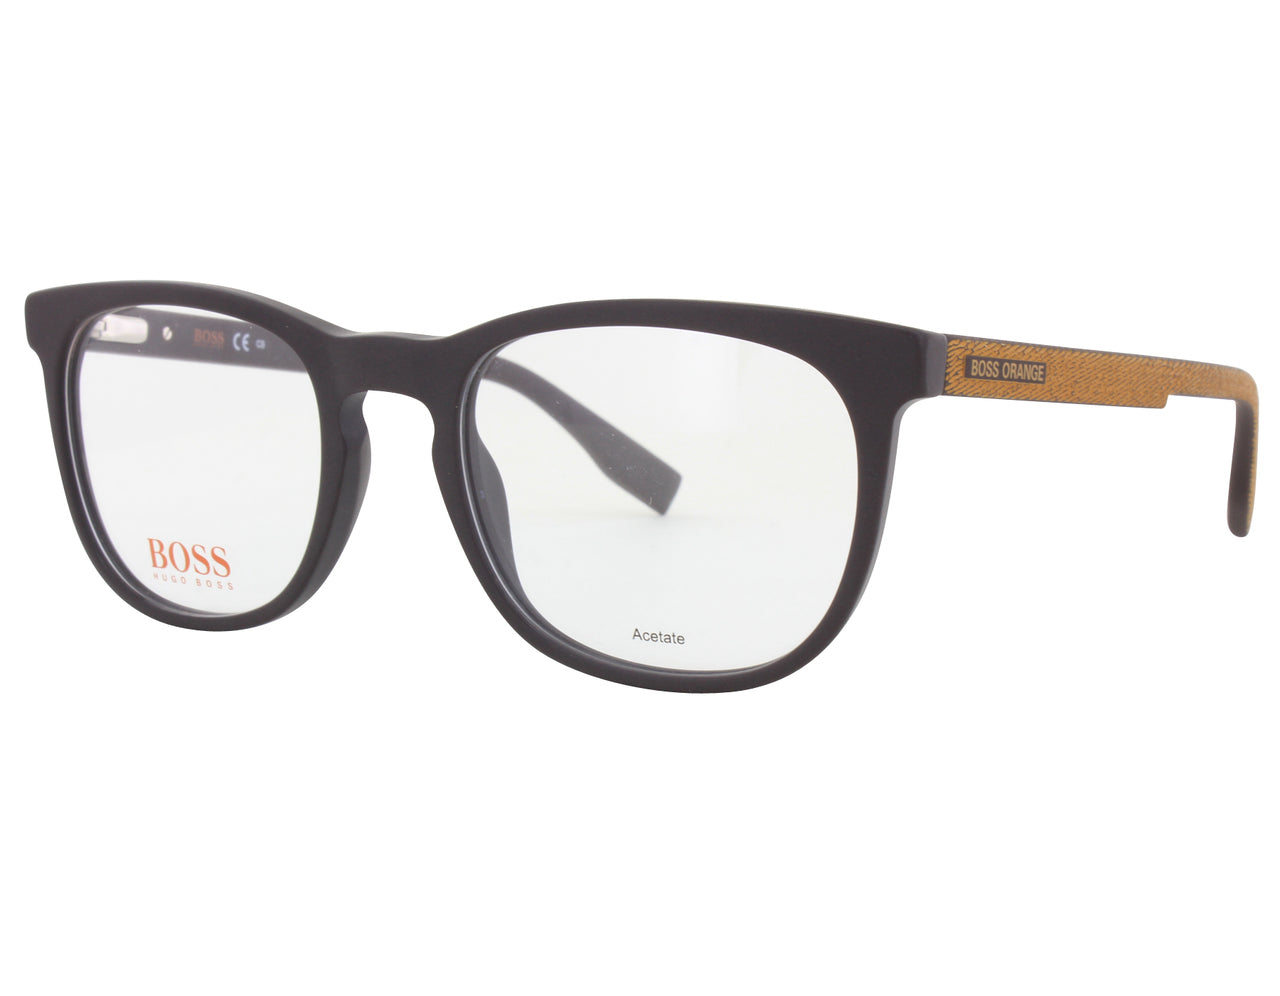 Hugo Boss B0291-09Q20 52mm - Eyeglasses - livesunglasses-com